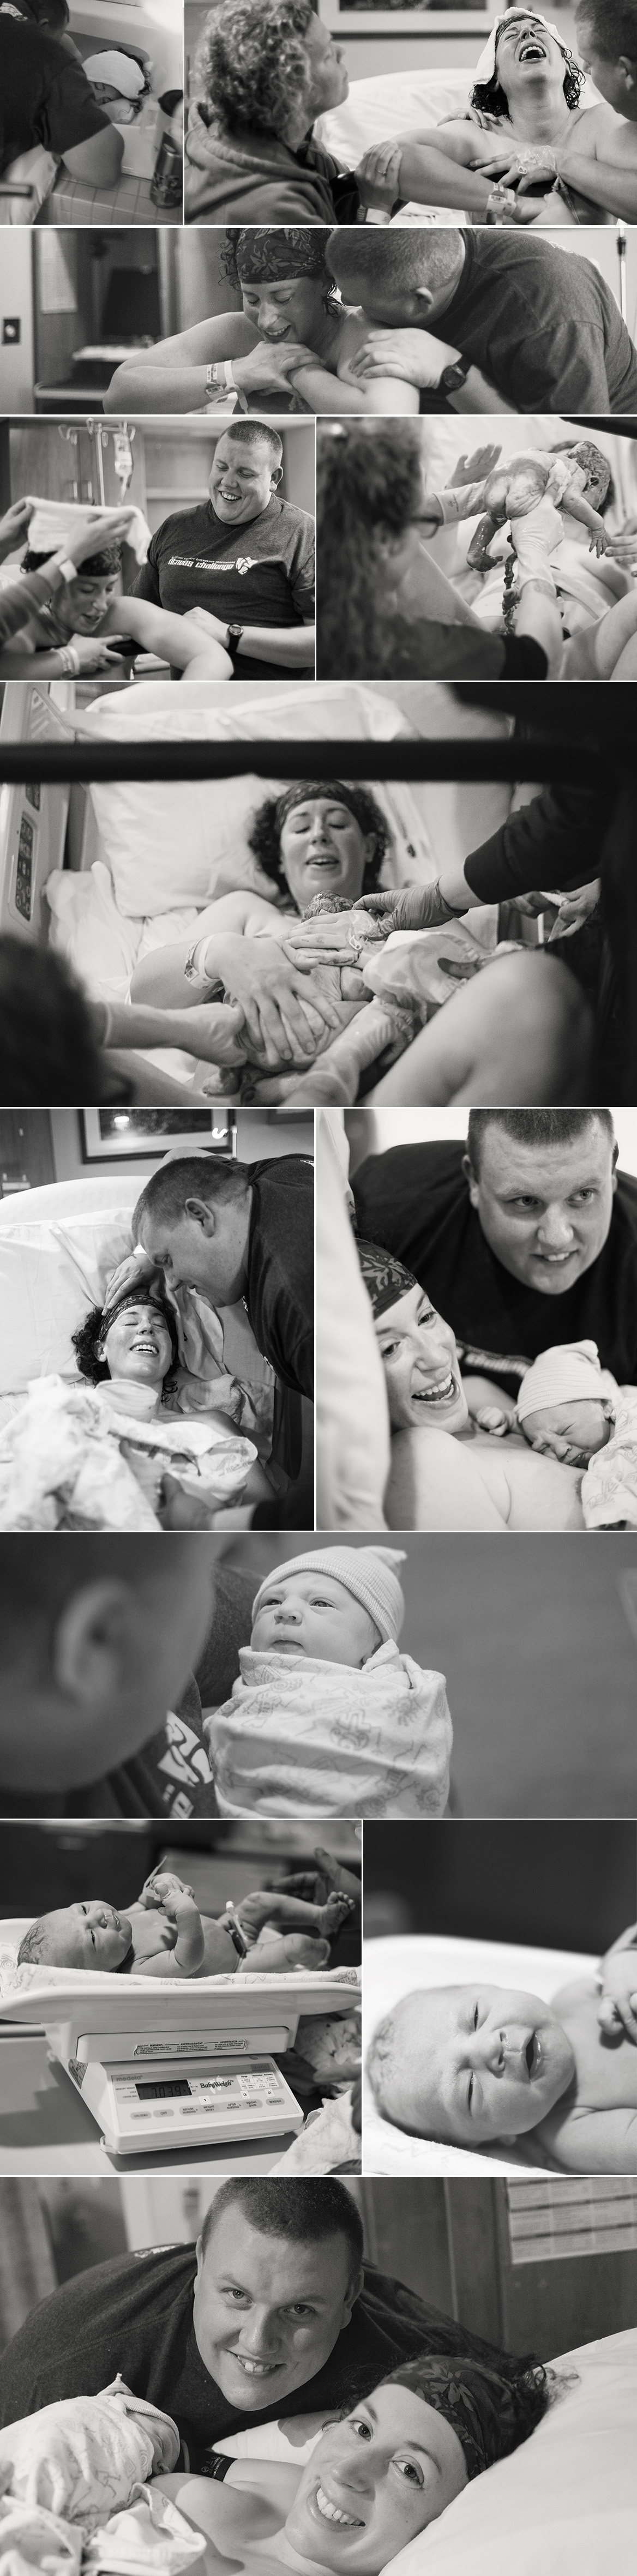 bellinghambirthcollage